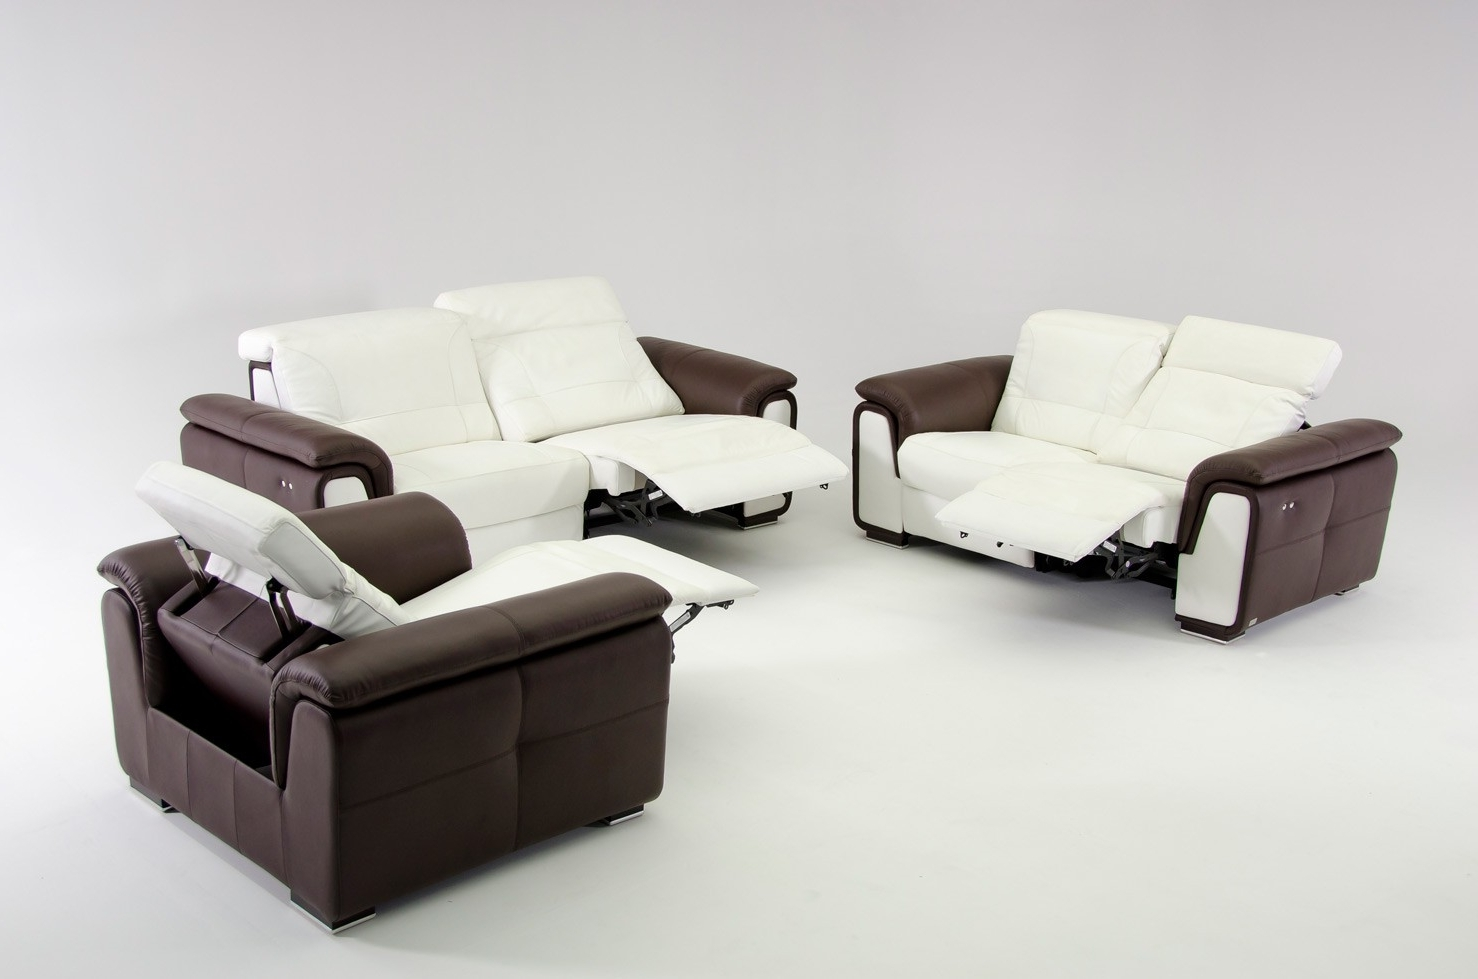 2019 Sofa : Sofa Recliners For Sale Single Sofa Sleeper Chair Single Pertaining To Sectional Sofas With Electric Recliners (View 7 of 20)